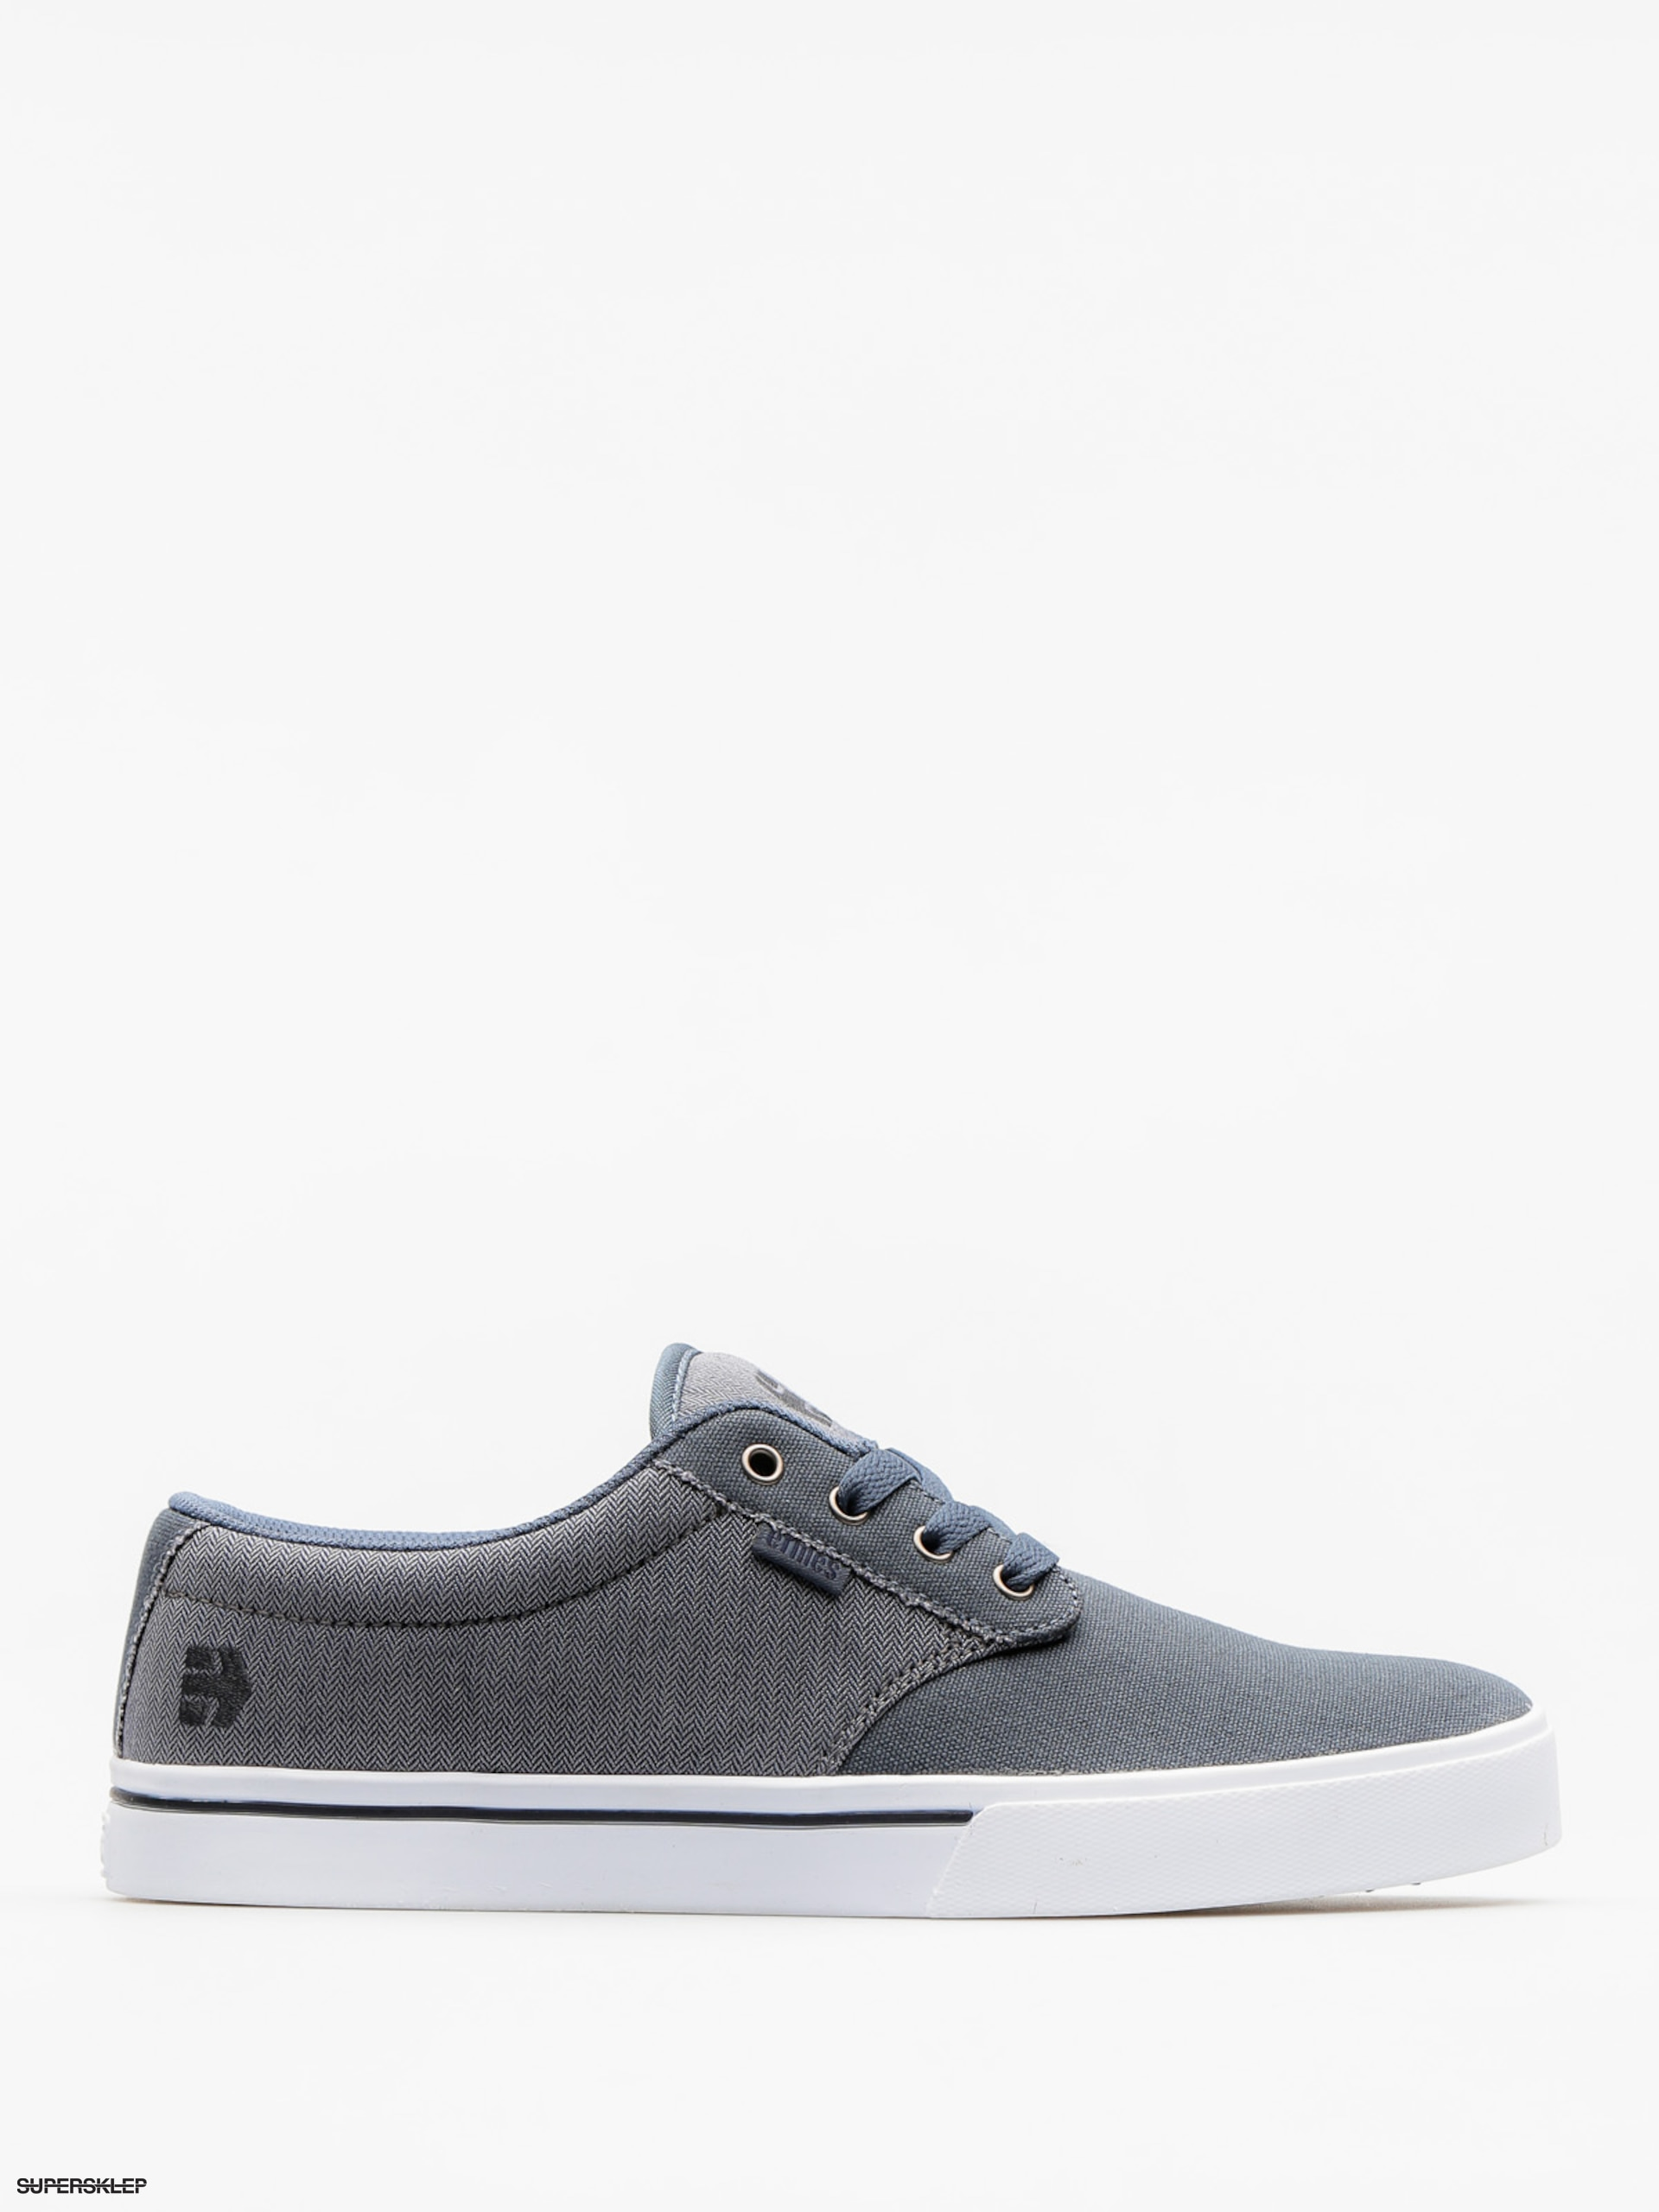 6159288f899451 Buty Etnies Jameson 2 Eco (grey black silver)